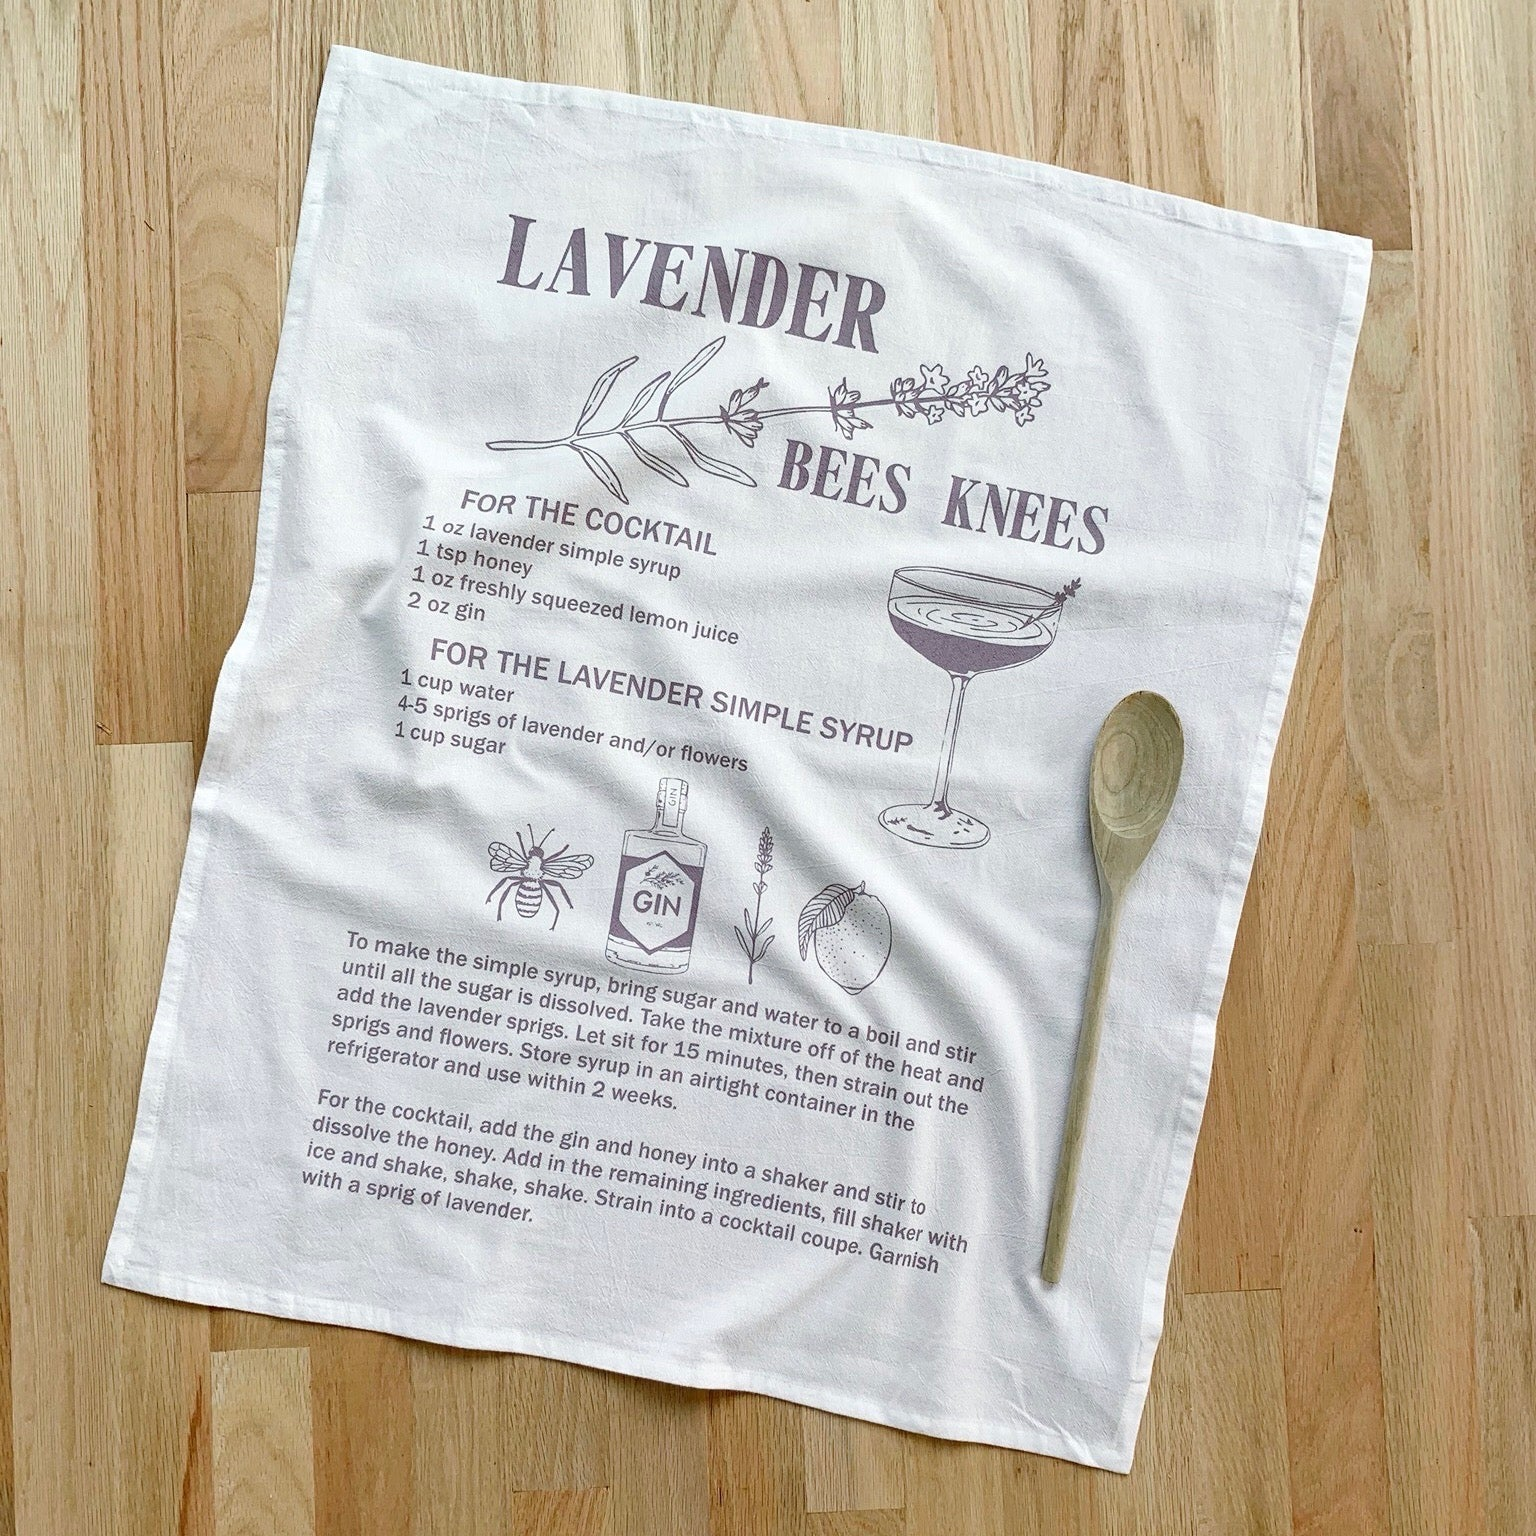 Oh, Little Rabbit – Lavender Bees Knees Flour Sack Towel